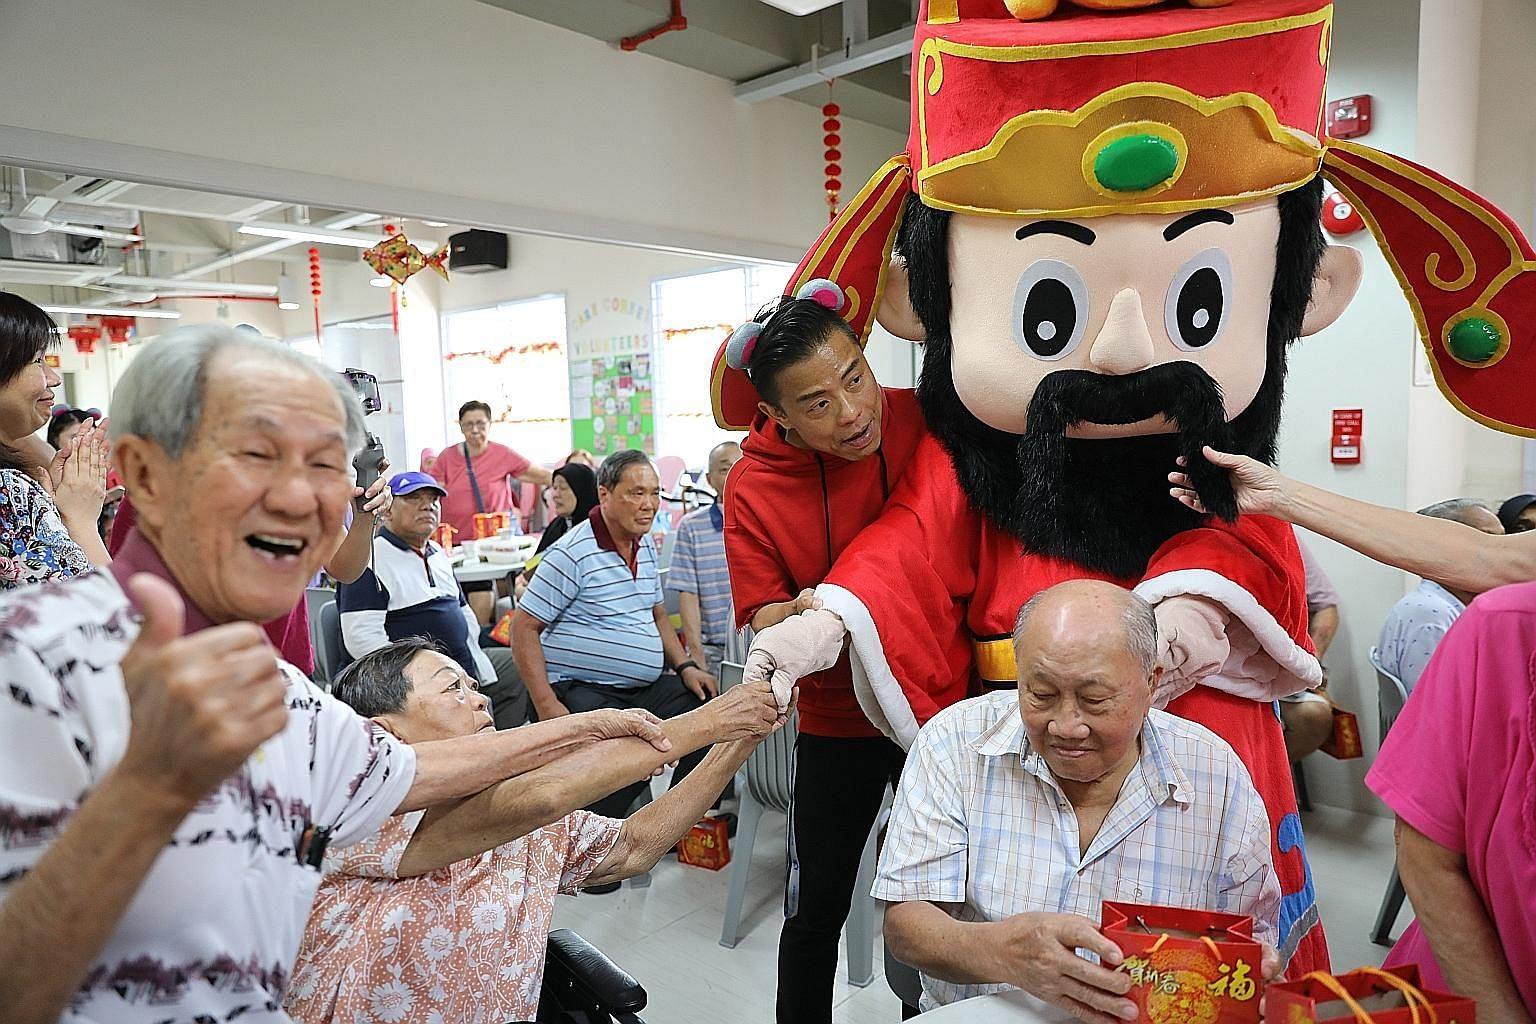 Mr Teo Kiong Chiang (left), 81, a senior at Care Corner Senior Activity Centre, gives the thumbs up as the God of Fortune distributes oranges to the elderly. The man dressed as the God of Fortune is 48-year-old Andrew Lum, SPH's assistant manager of